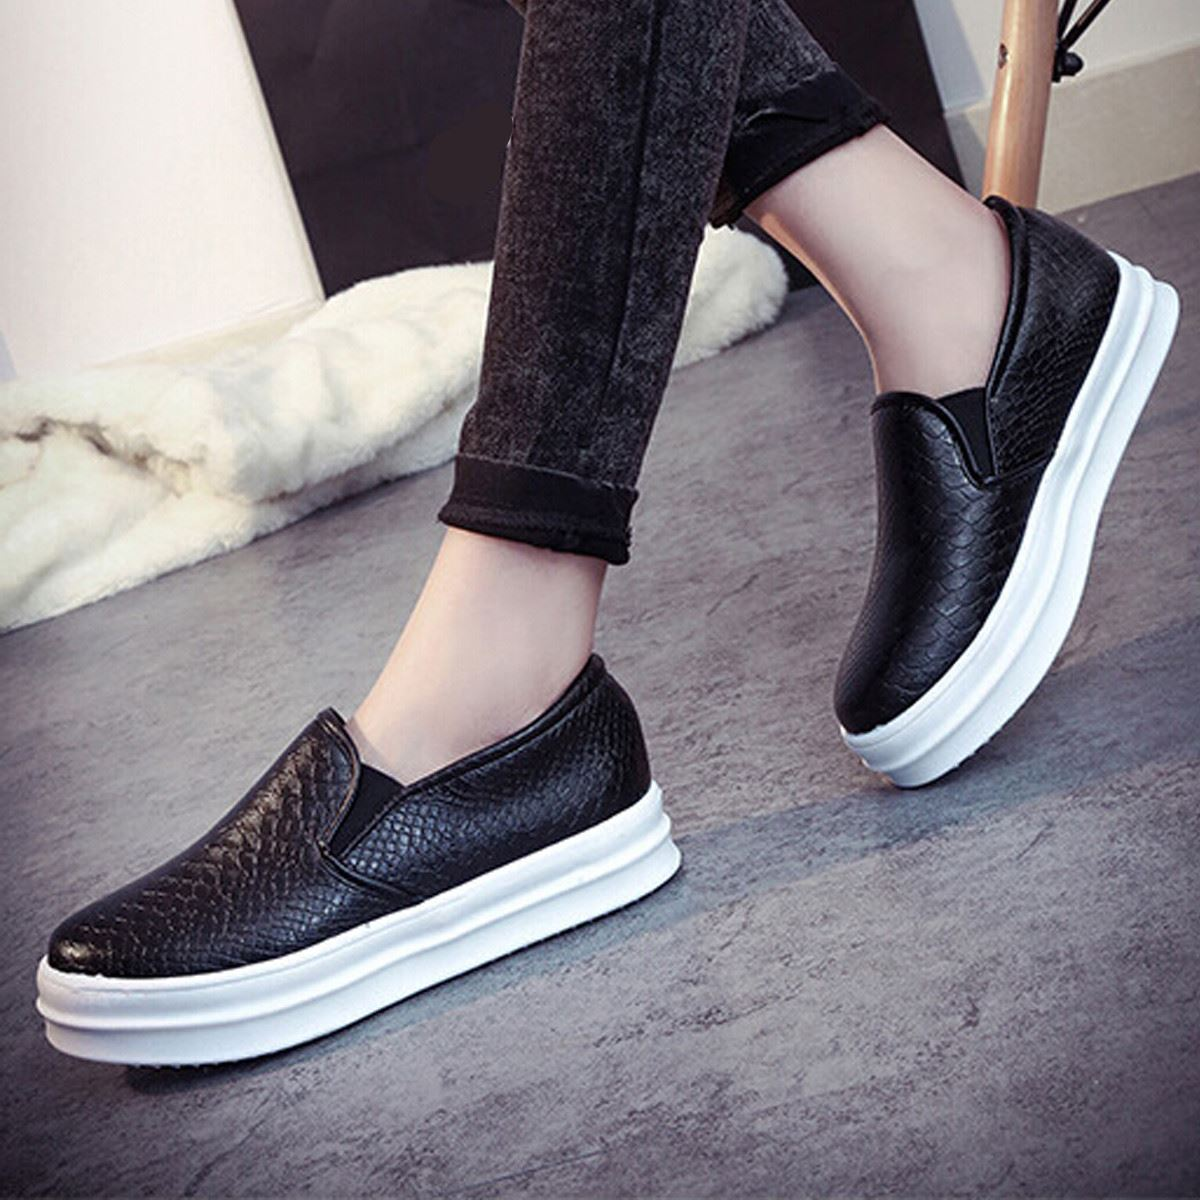 a6b31ff6d93 Wholesale Summer Korean Style Trendy Women Shoes Lady Slip On Round Toe  Solid Colors Soft Leather Sizes 35 39 Flat Shoe-in Women s Flats from Shoes  on ...